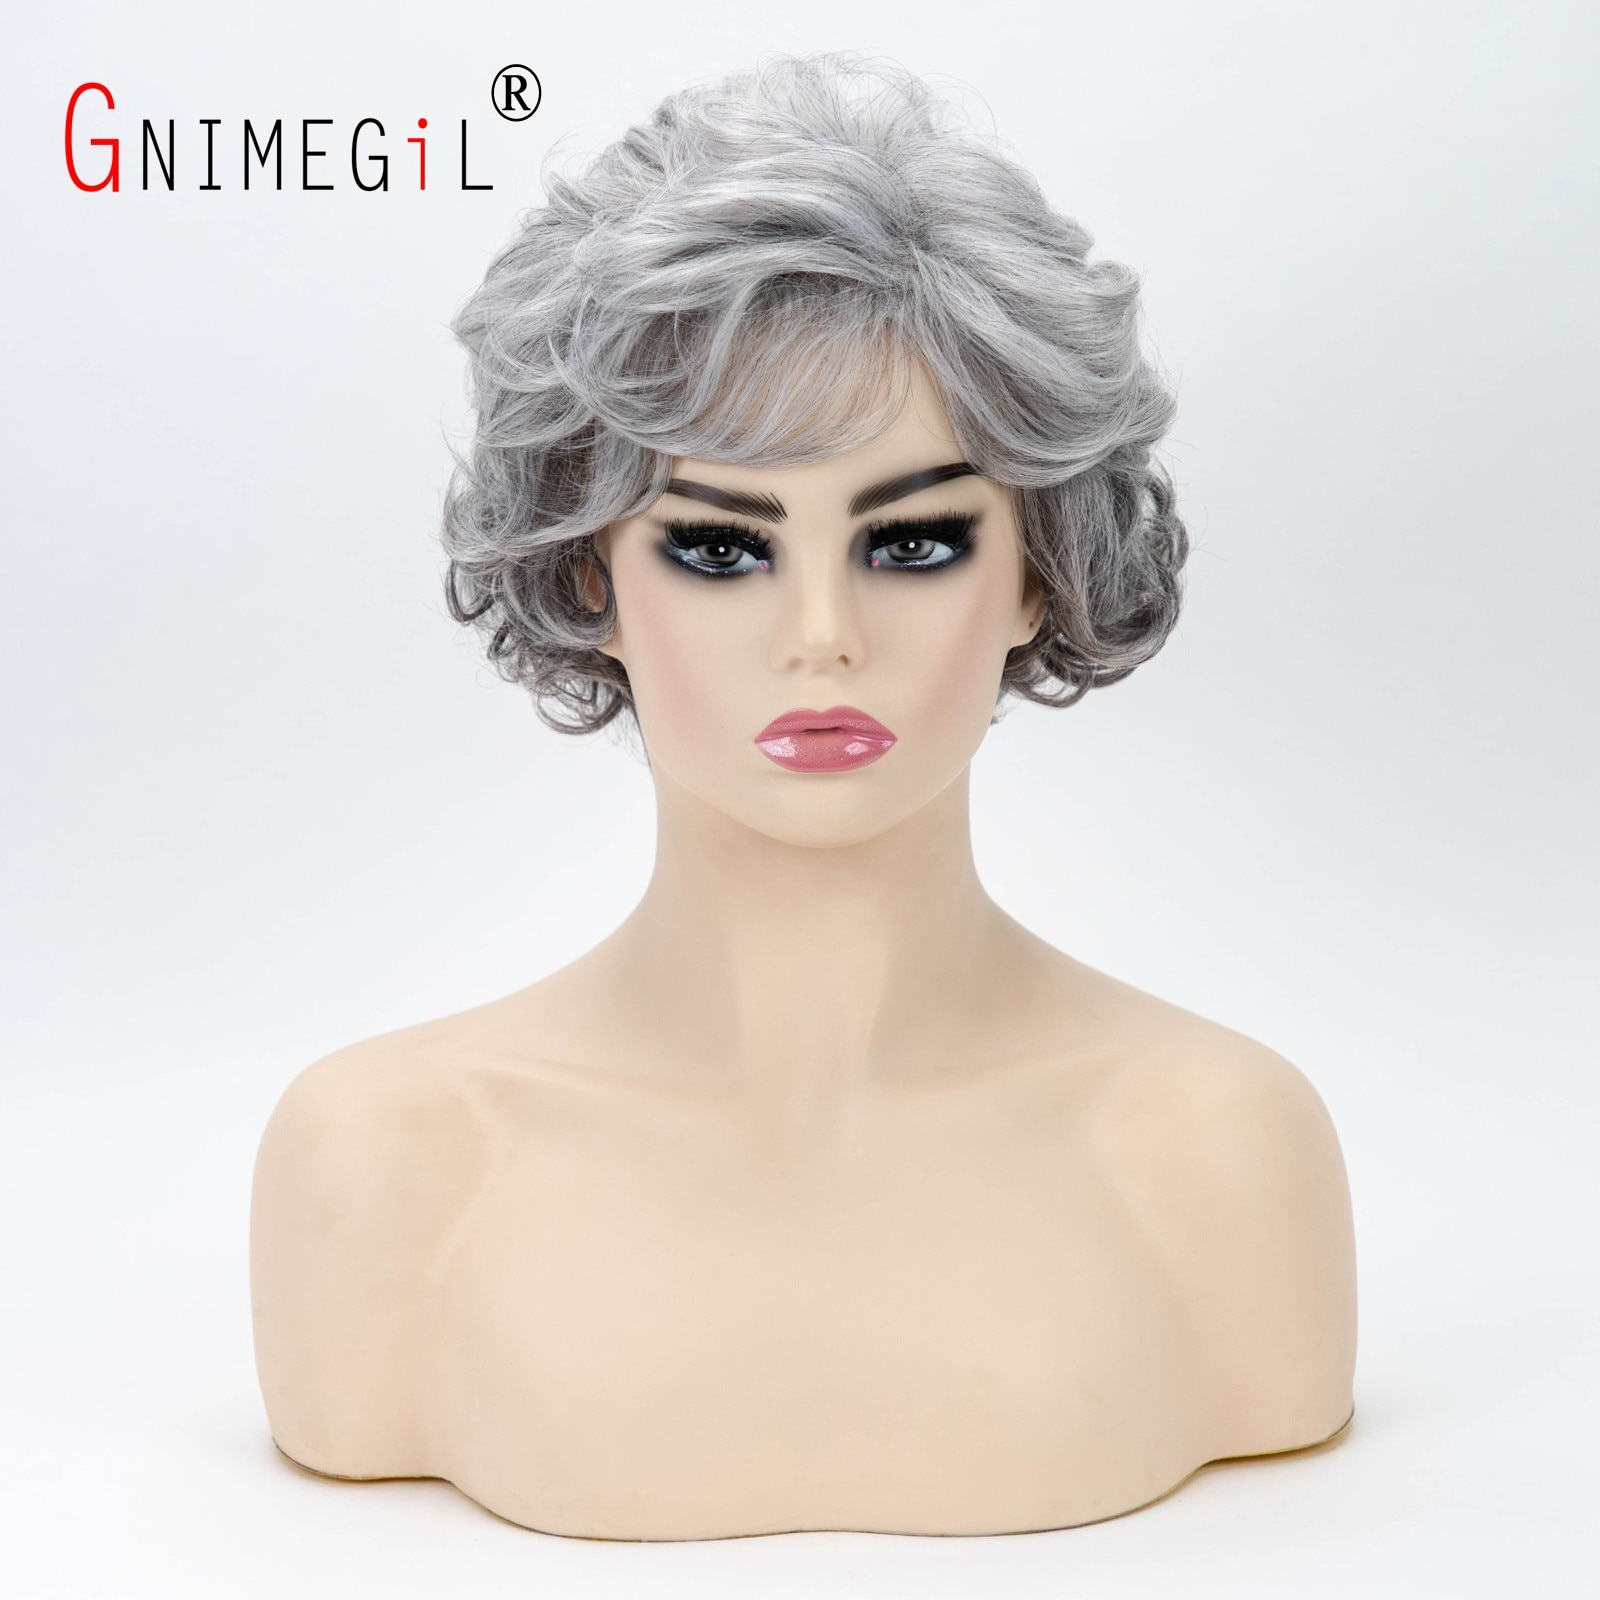 GNIMEGIL 60s Ombre Grey Short Curly Wigs for Women Old Lady Synthetic Hair Costume Wig Gifts for Grandma